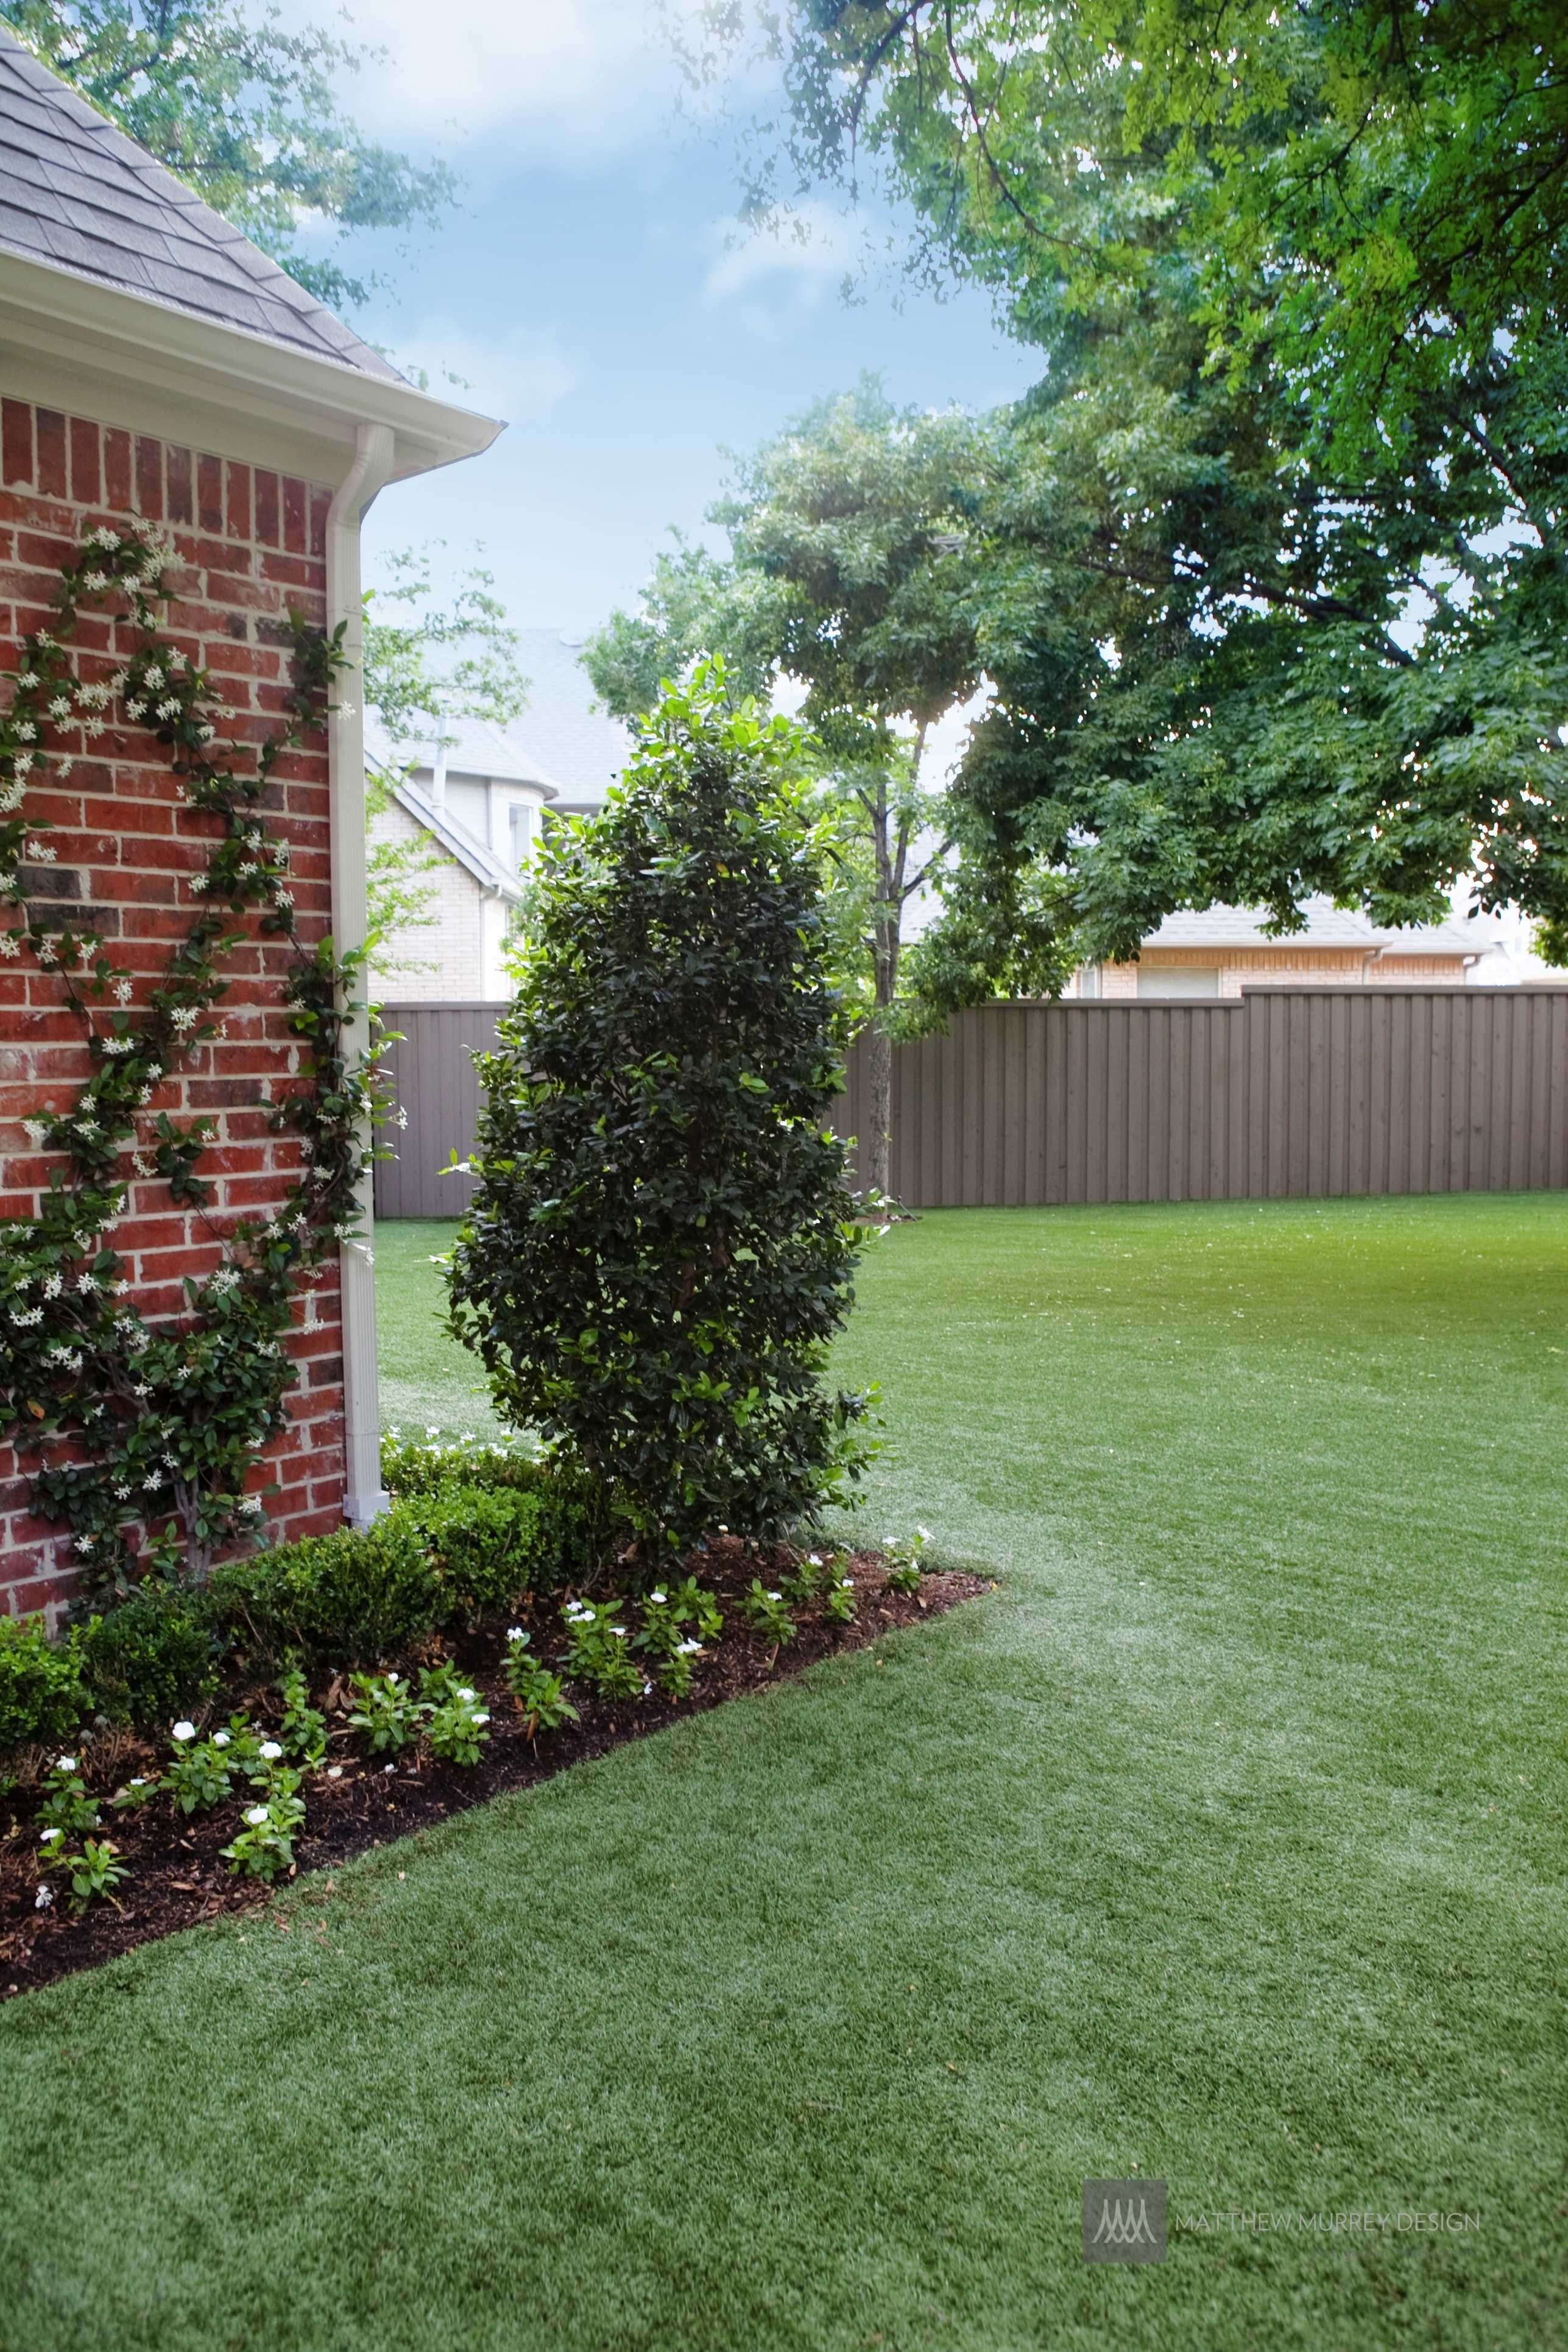 Landscape ideas for sloped areas in shade - Landscape Ideas Best Solutions For Shade